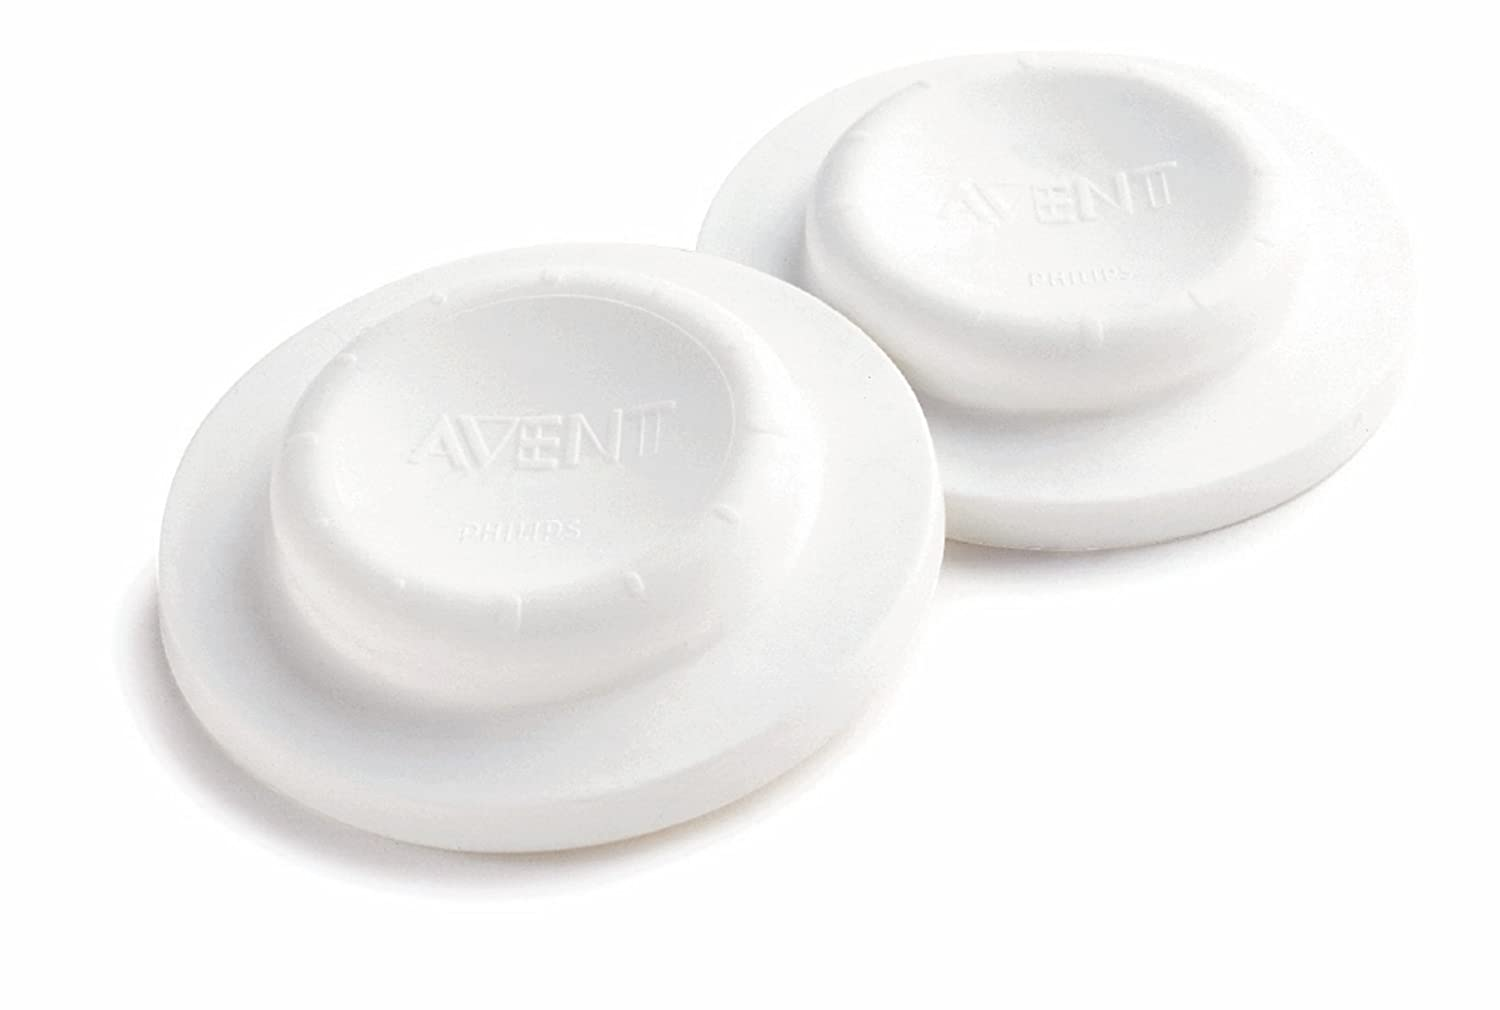 Philips AVENT SCF143/06 Bottle Sealing Discs